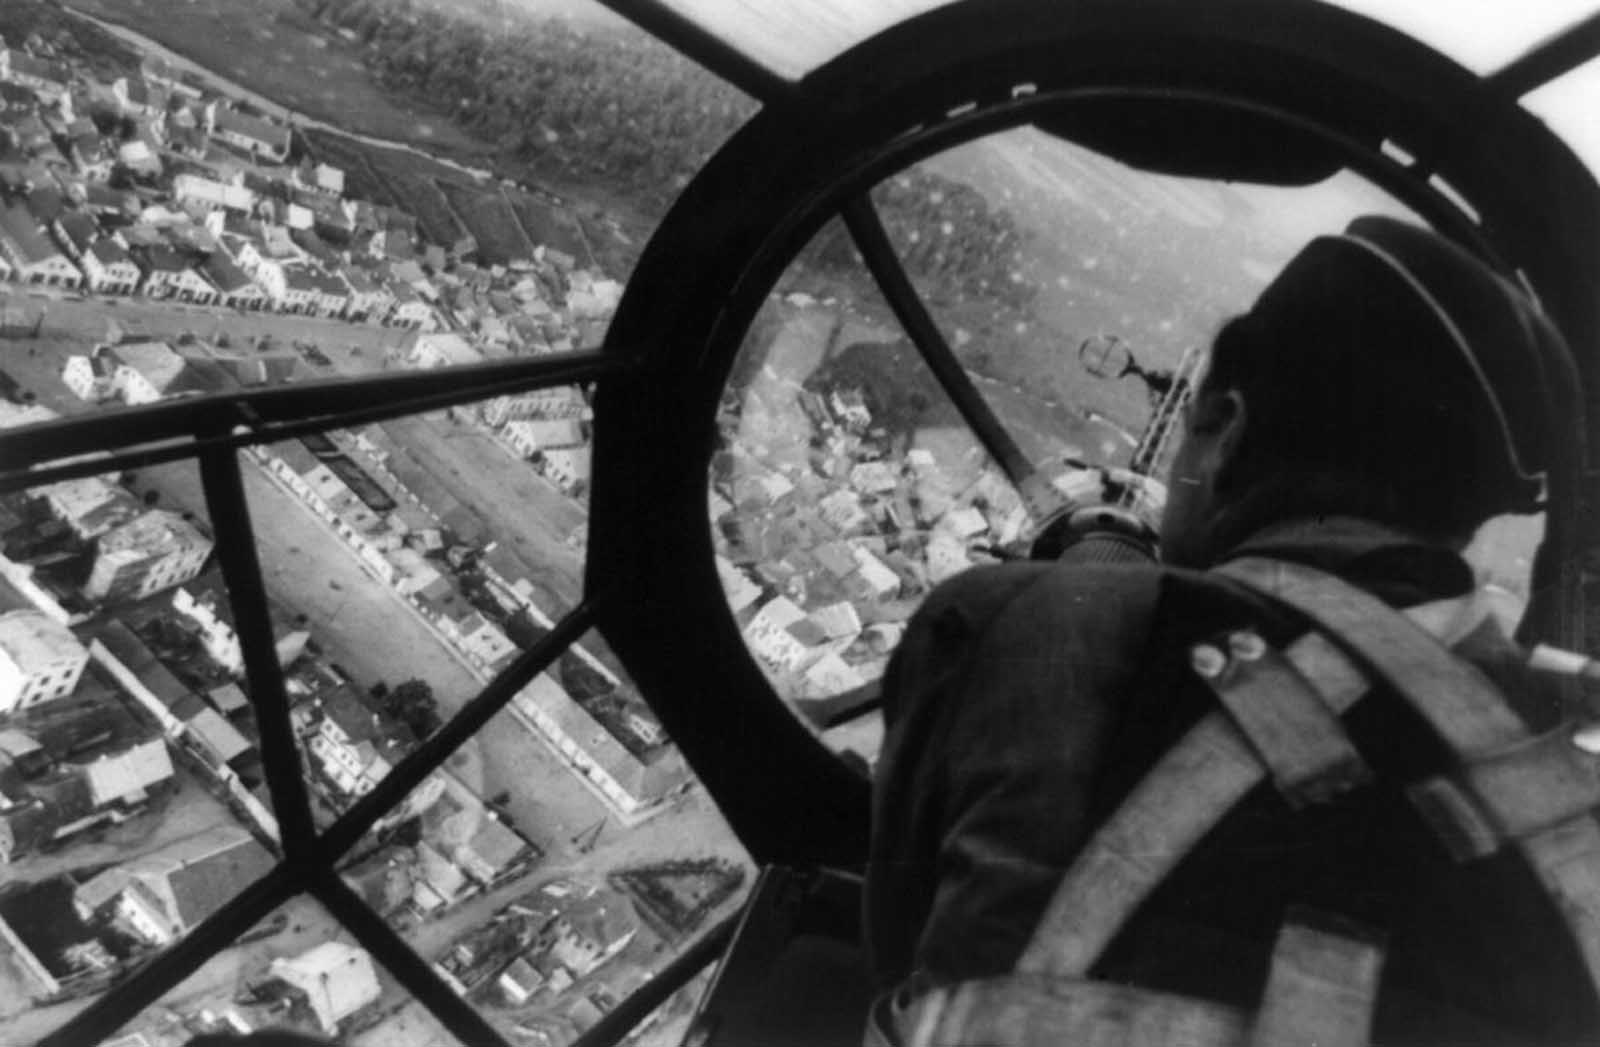 View of an undamaged Polish city from the cockpit of a German medium bomber aircraft, likely a Heinkel He 111 P, in 1939.